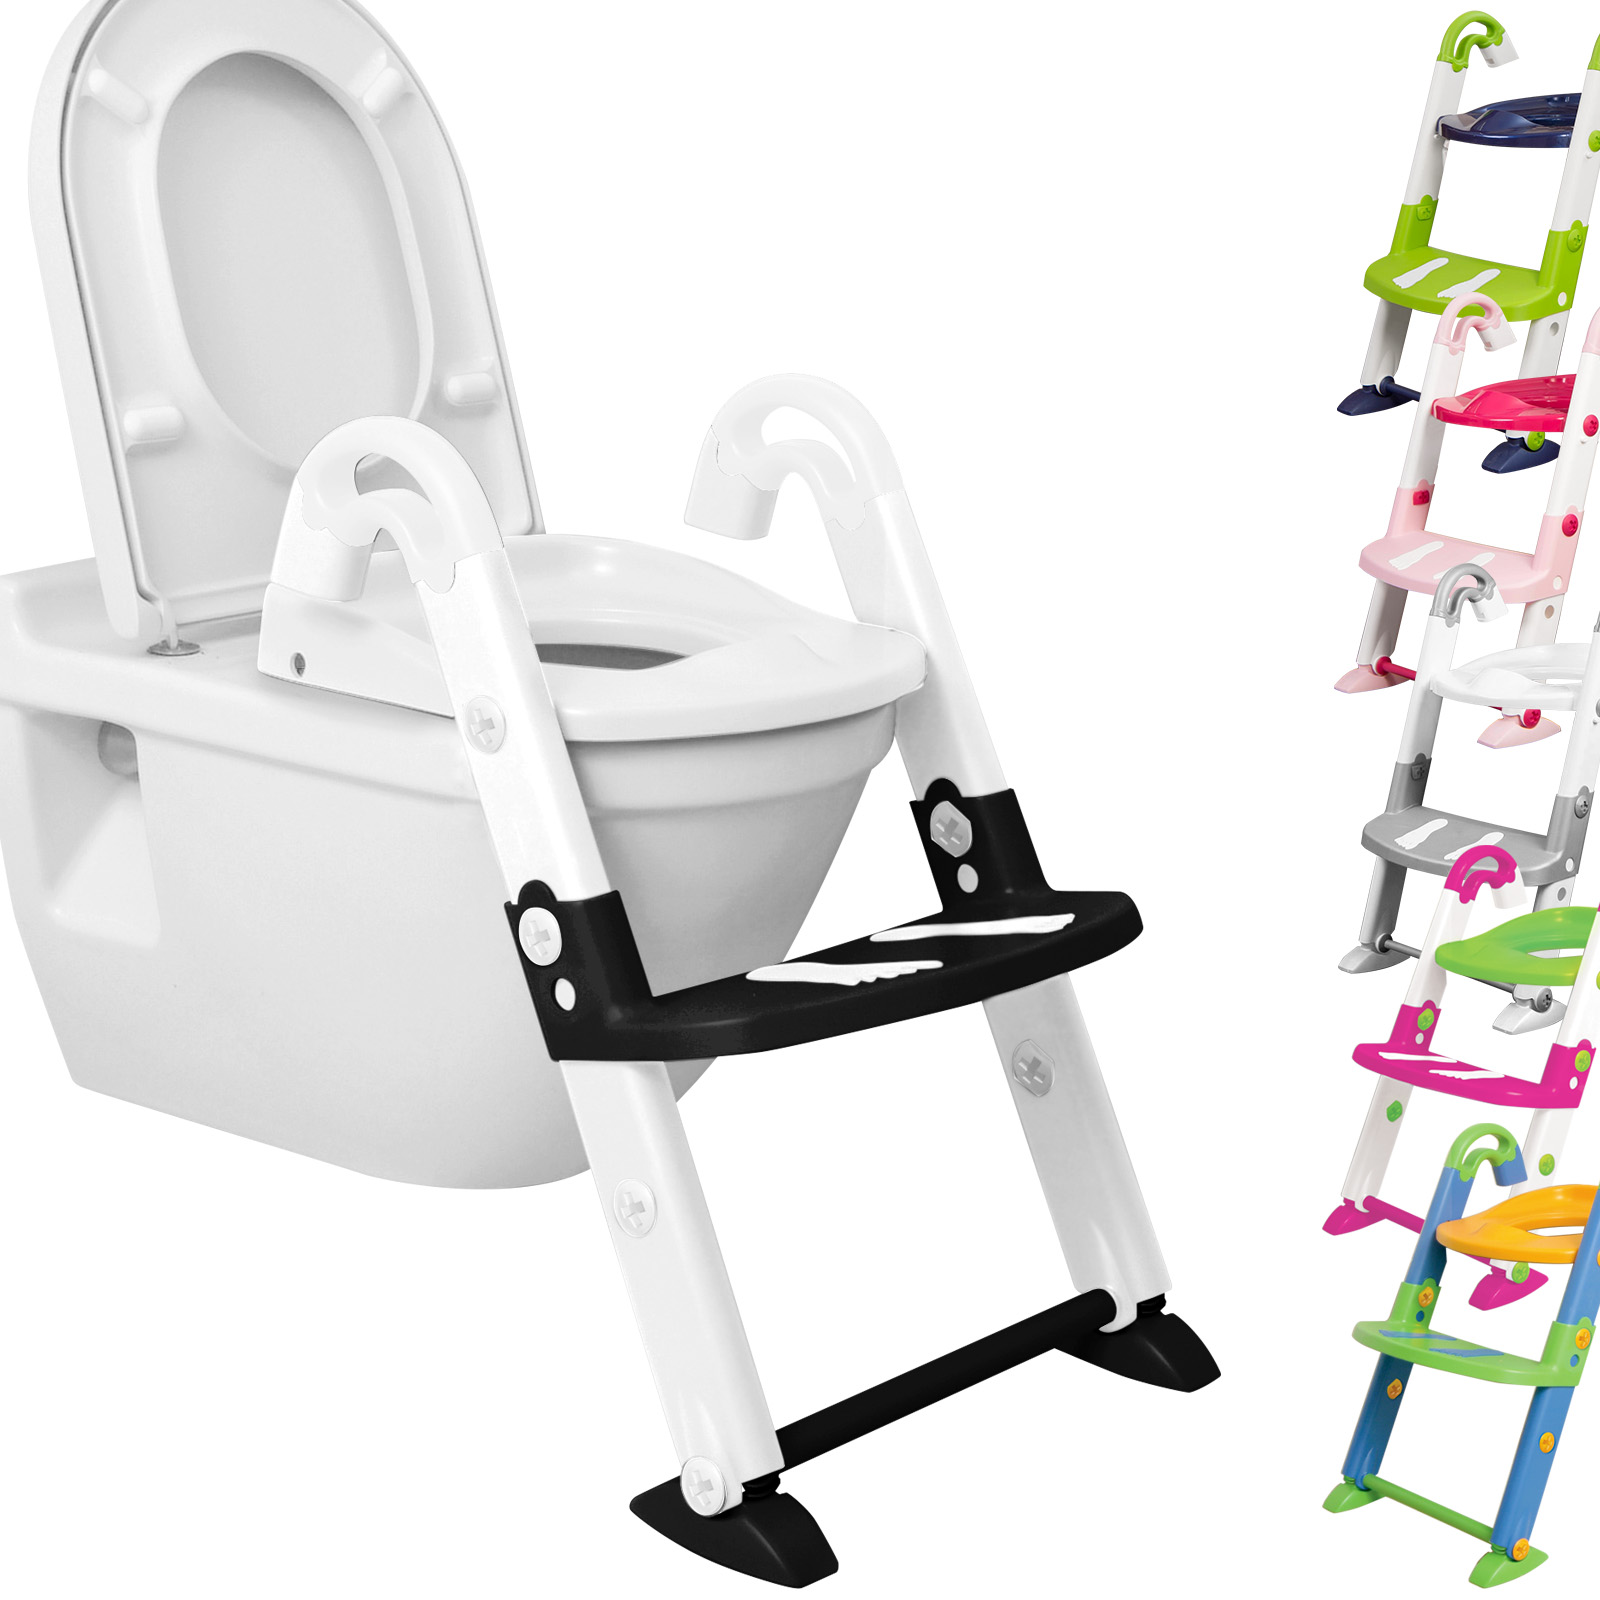 kidskit 3in1 toilettentrainer kinder wc sitz toilettensitz. Black Bedroom Furniture Sets. Home Design Ideas